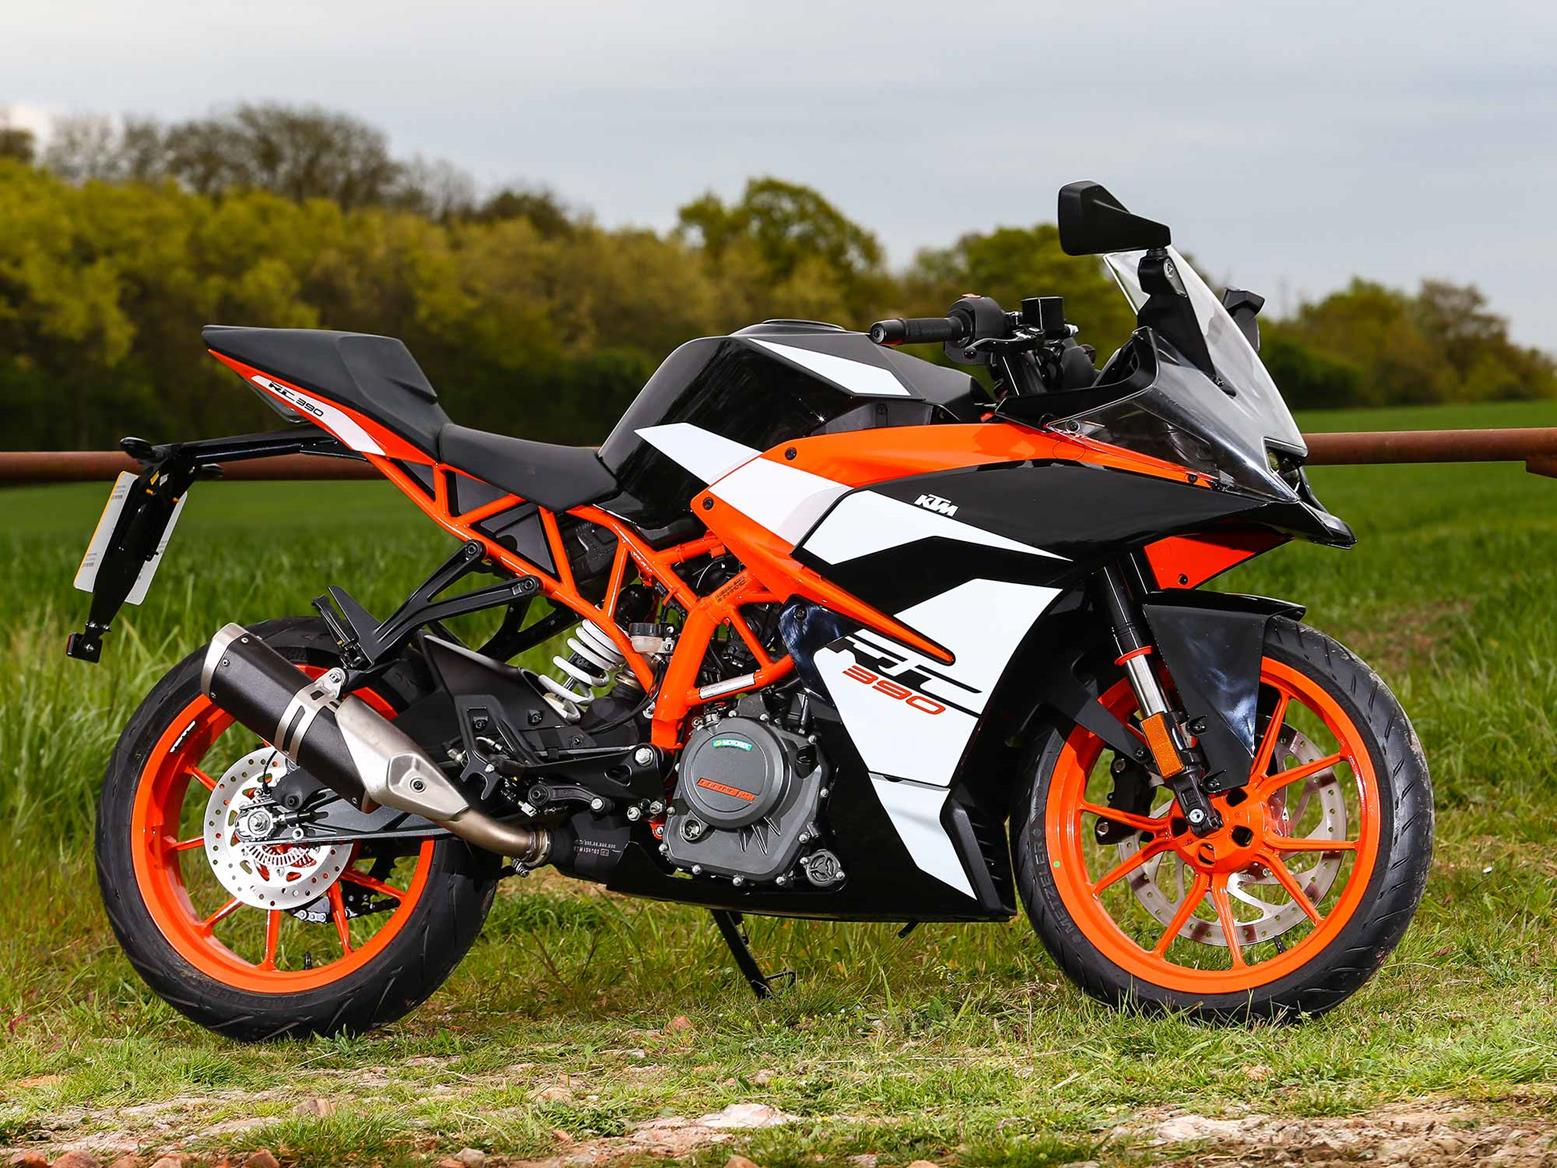 A side-on view of the KTM RC390